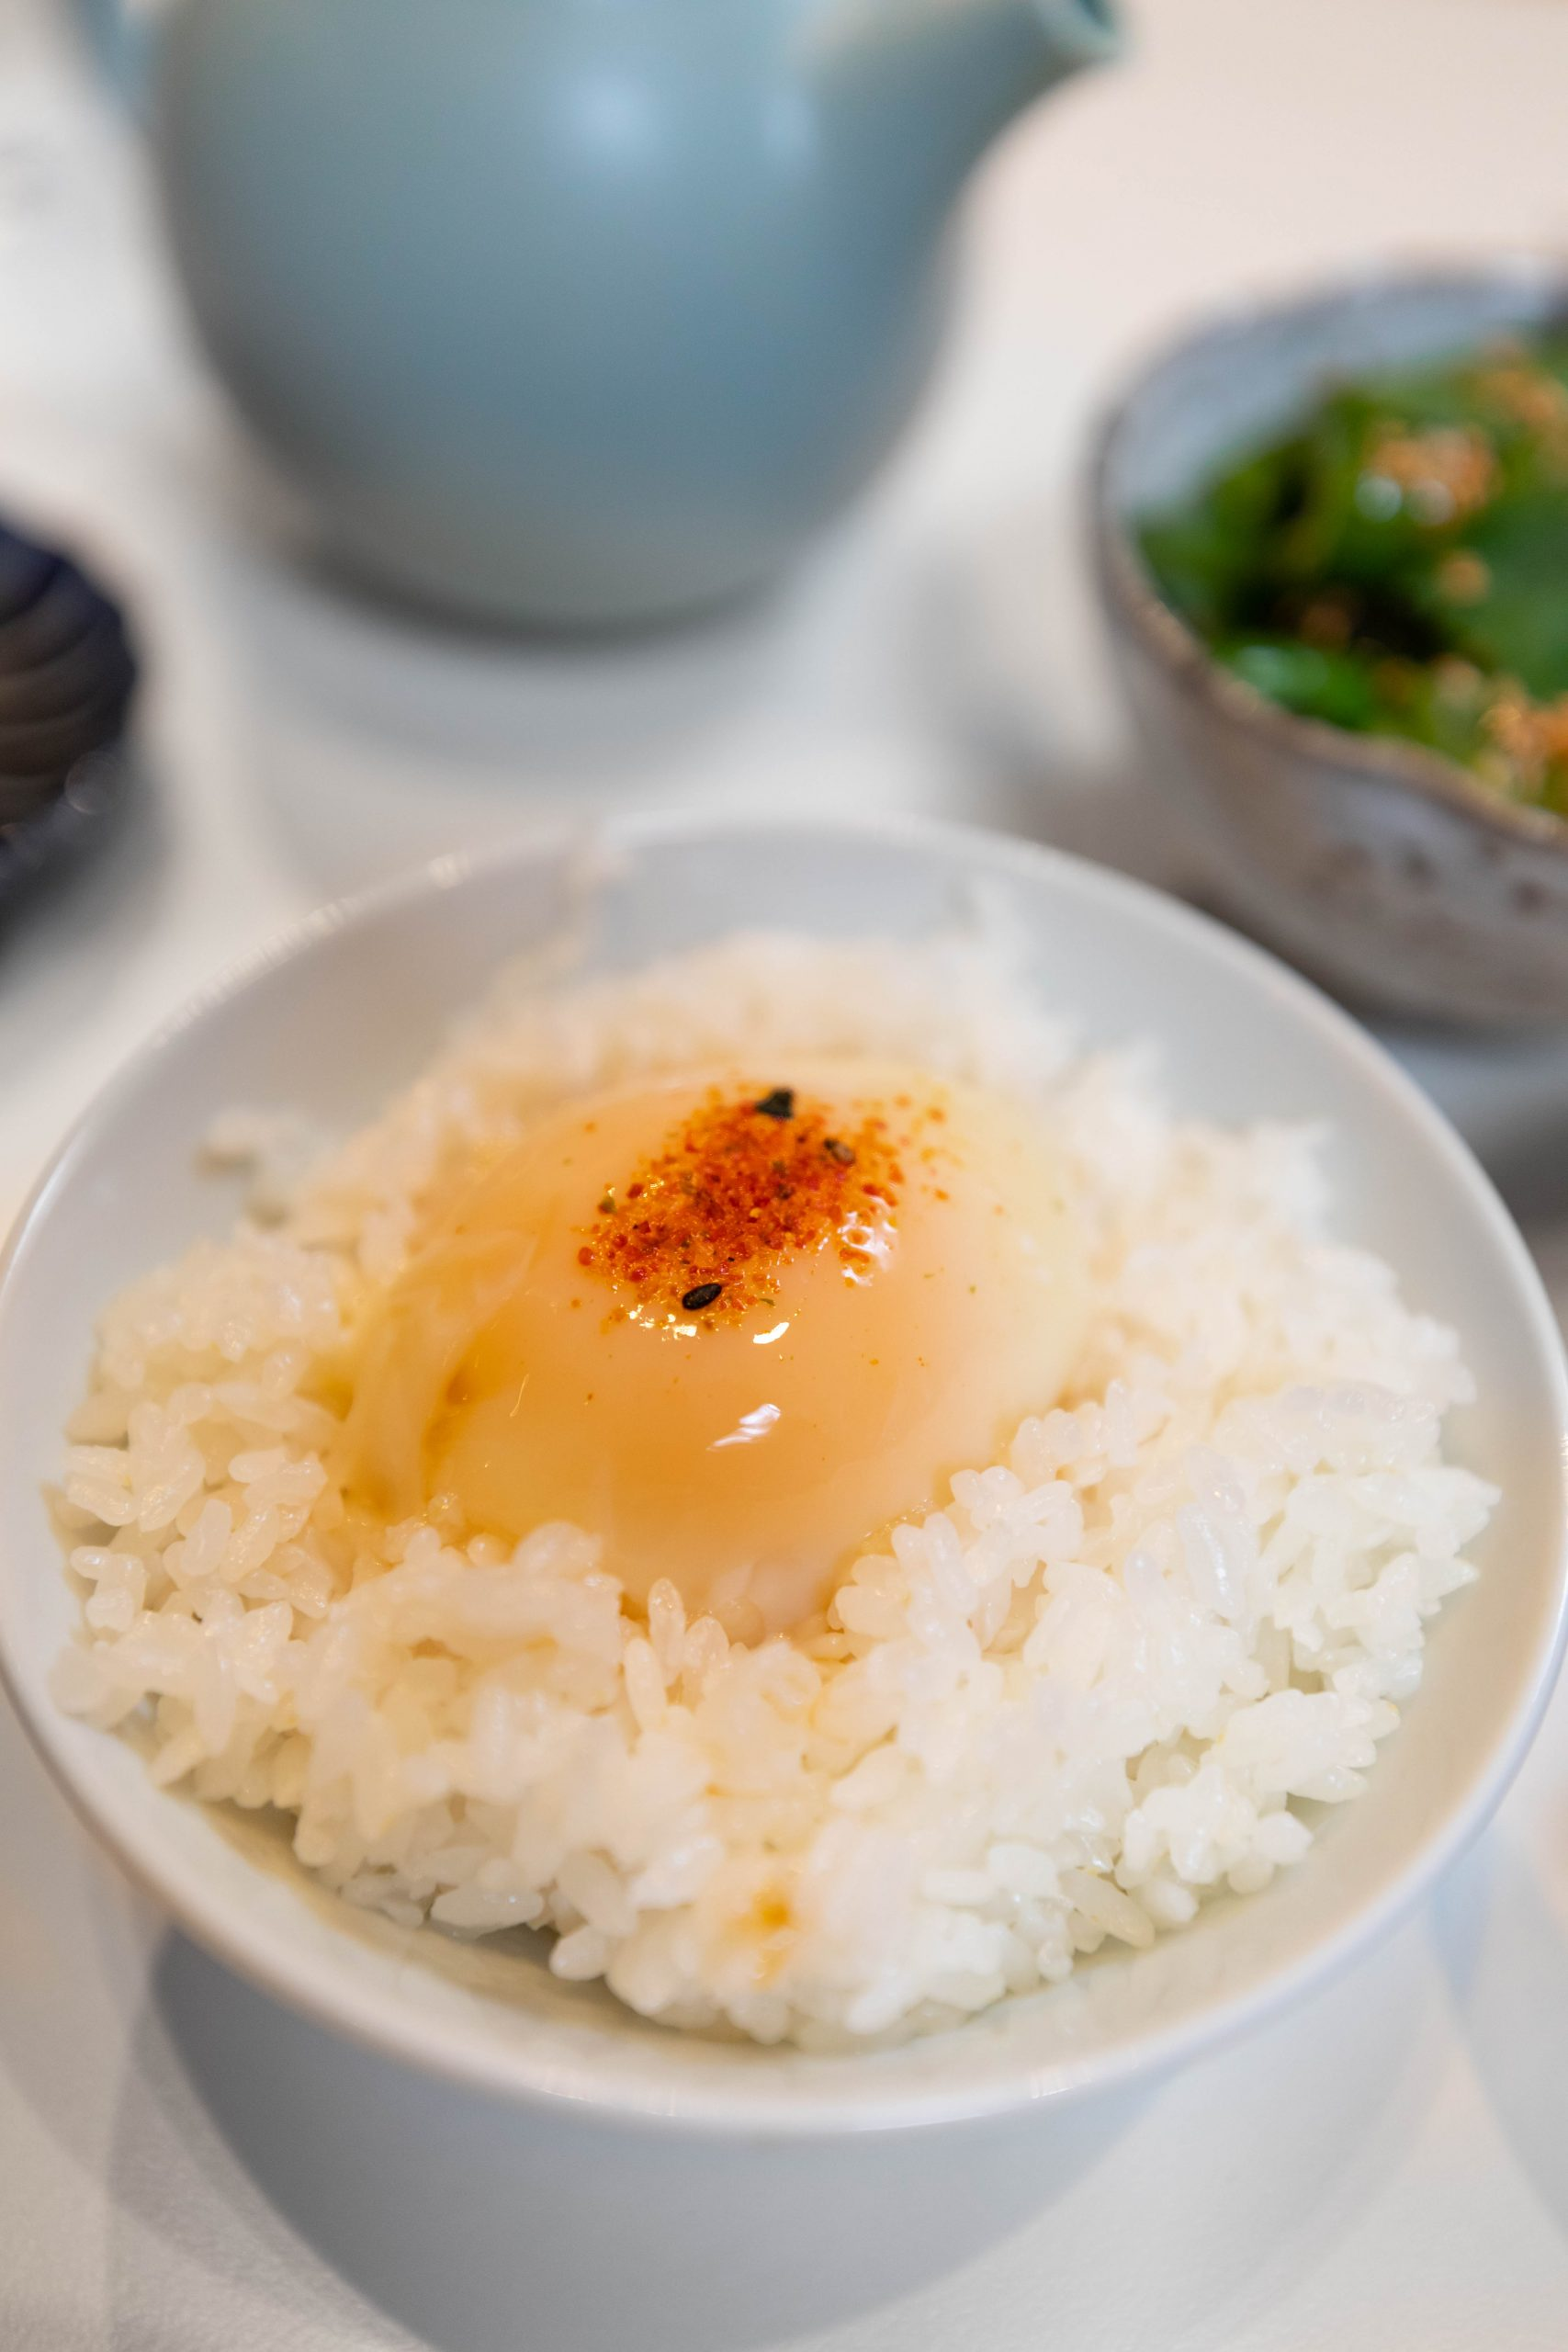 Egg on Rice Japanese Breakfast Set at Rule of Thirds Brooklyn Japanese Food in New York City NYC Fine Dining Asian Cuisine Luxury Restaurants of the World Written and Photographed by Annie Fairfax